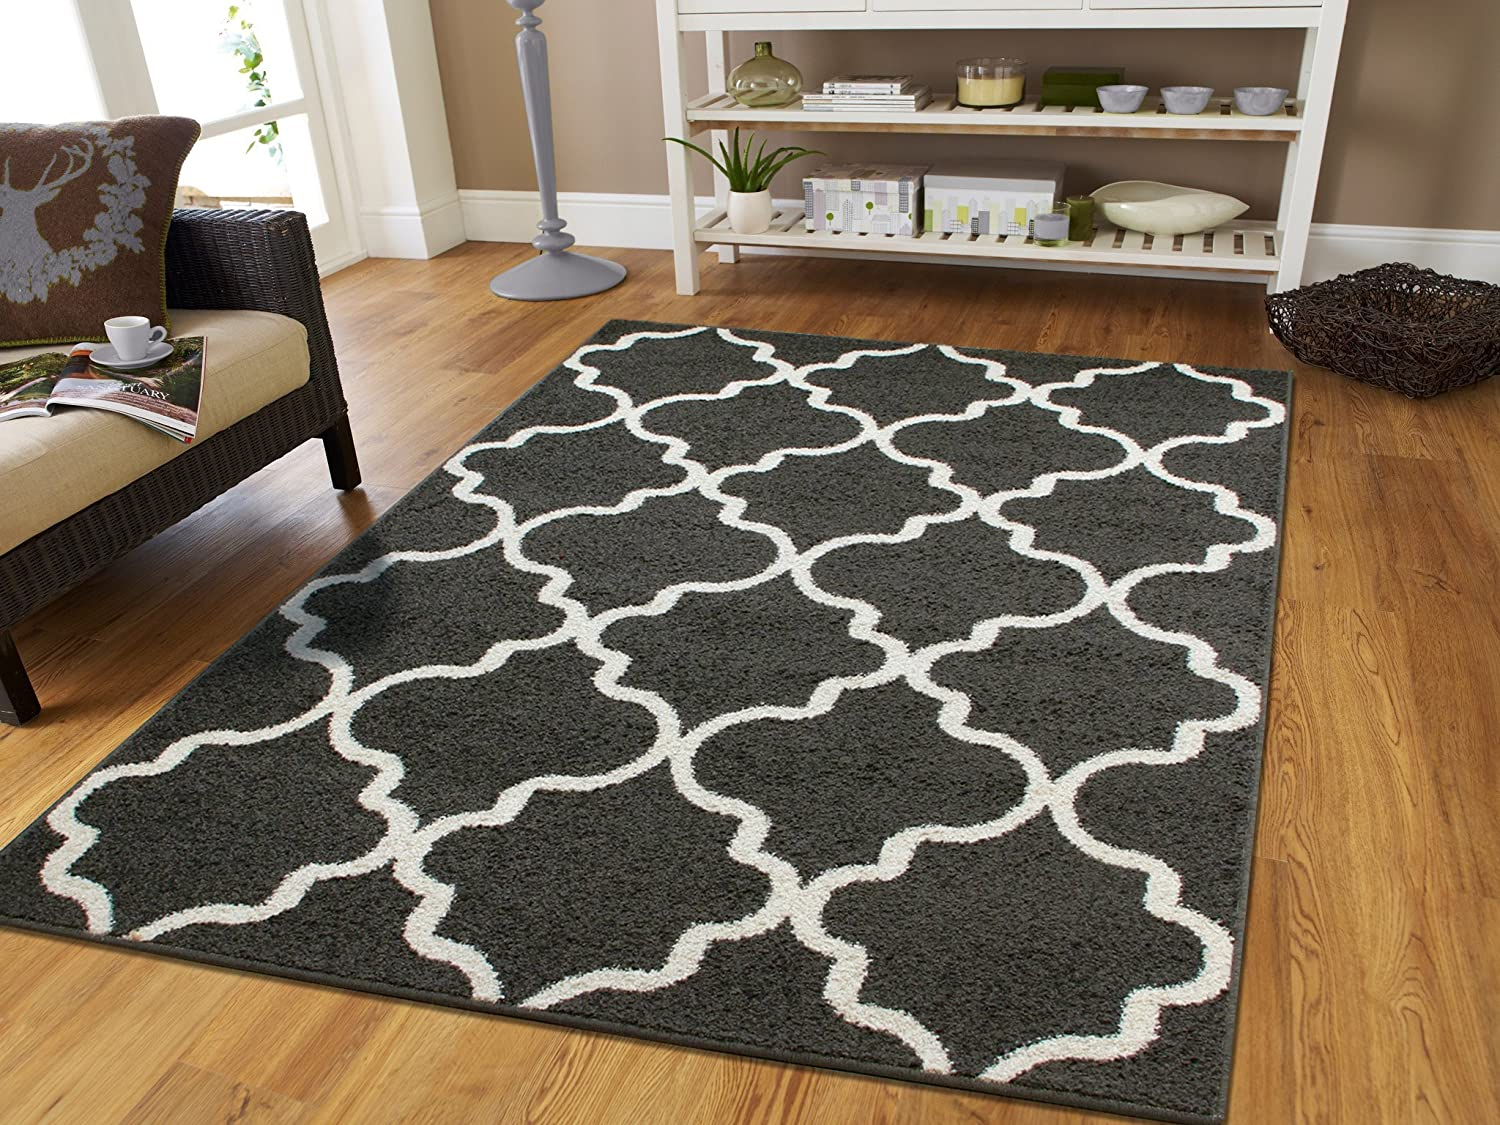 Lovely Amazon.com: Modern Area Rugs Morrocan Trellis Grey 2x3  ZU26